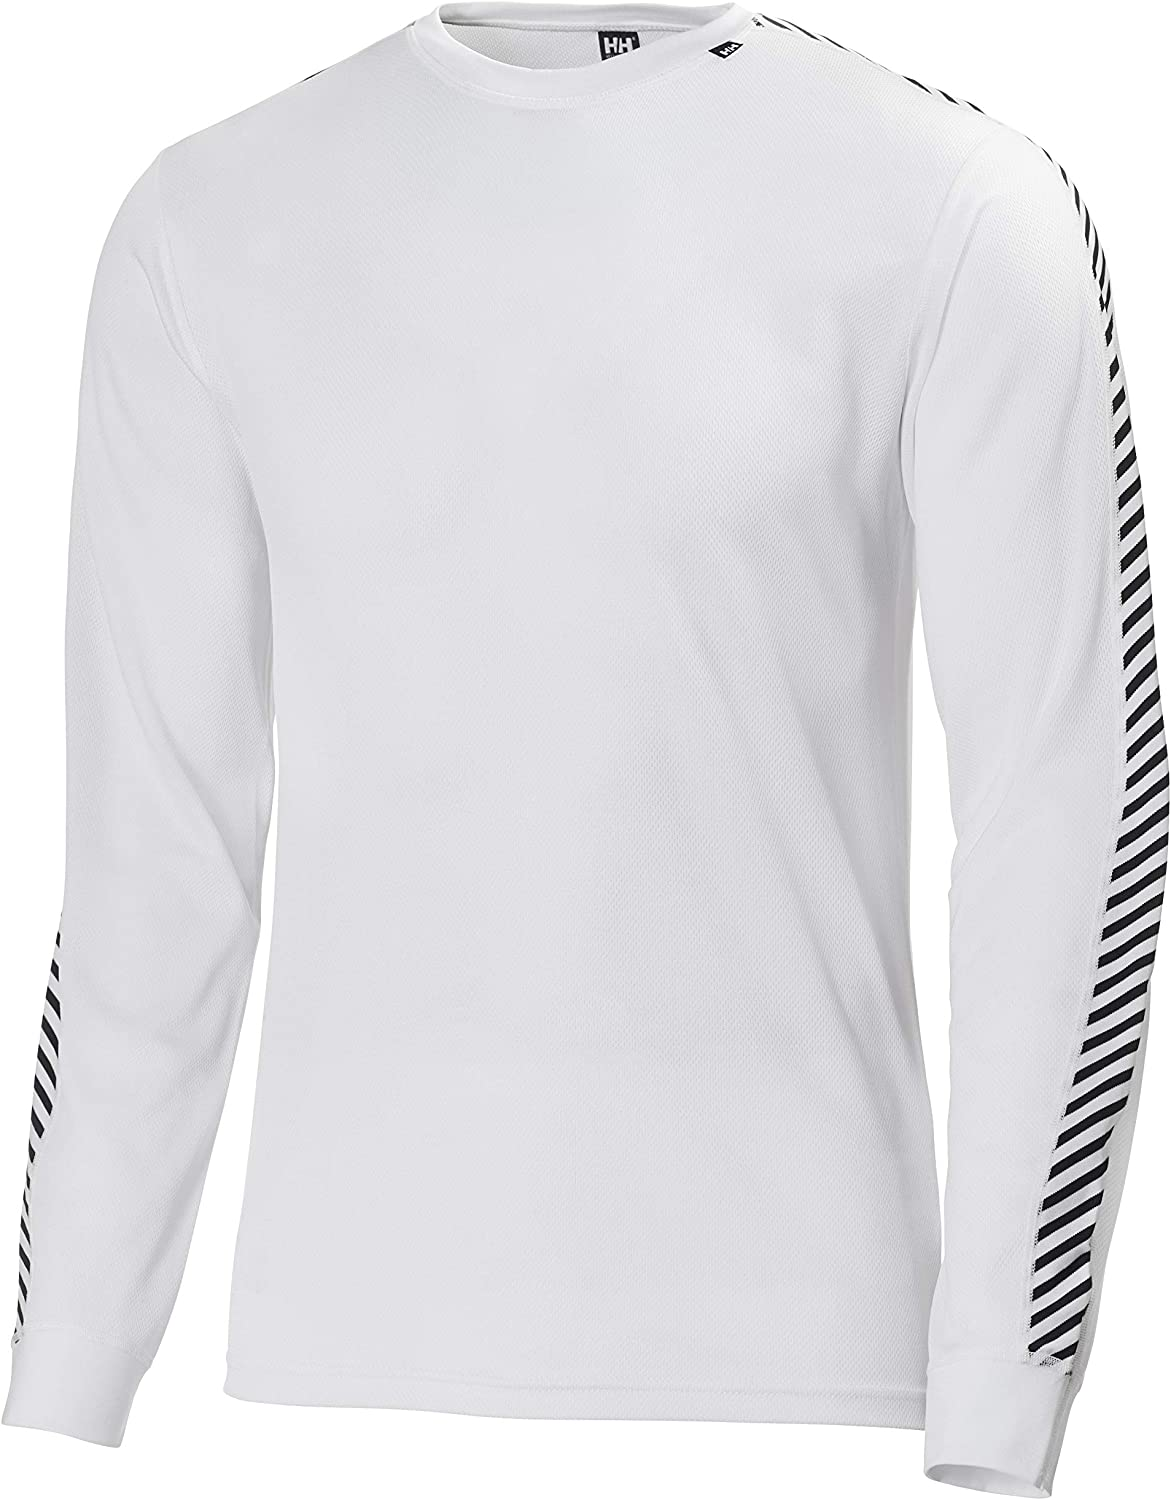 Helly Hansen Mens 2019 Lifa Tee SS Base Layer Fitness Thermal Top T-Shirt